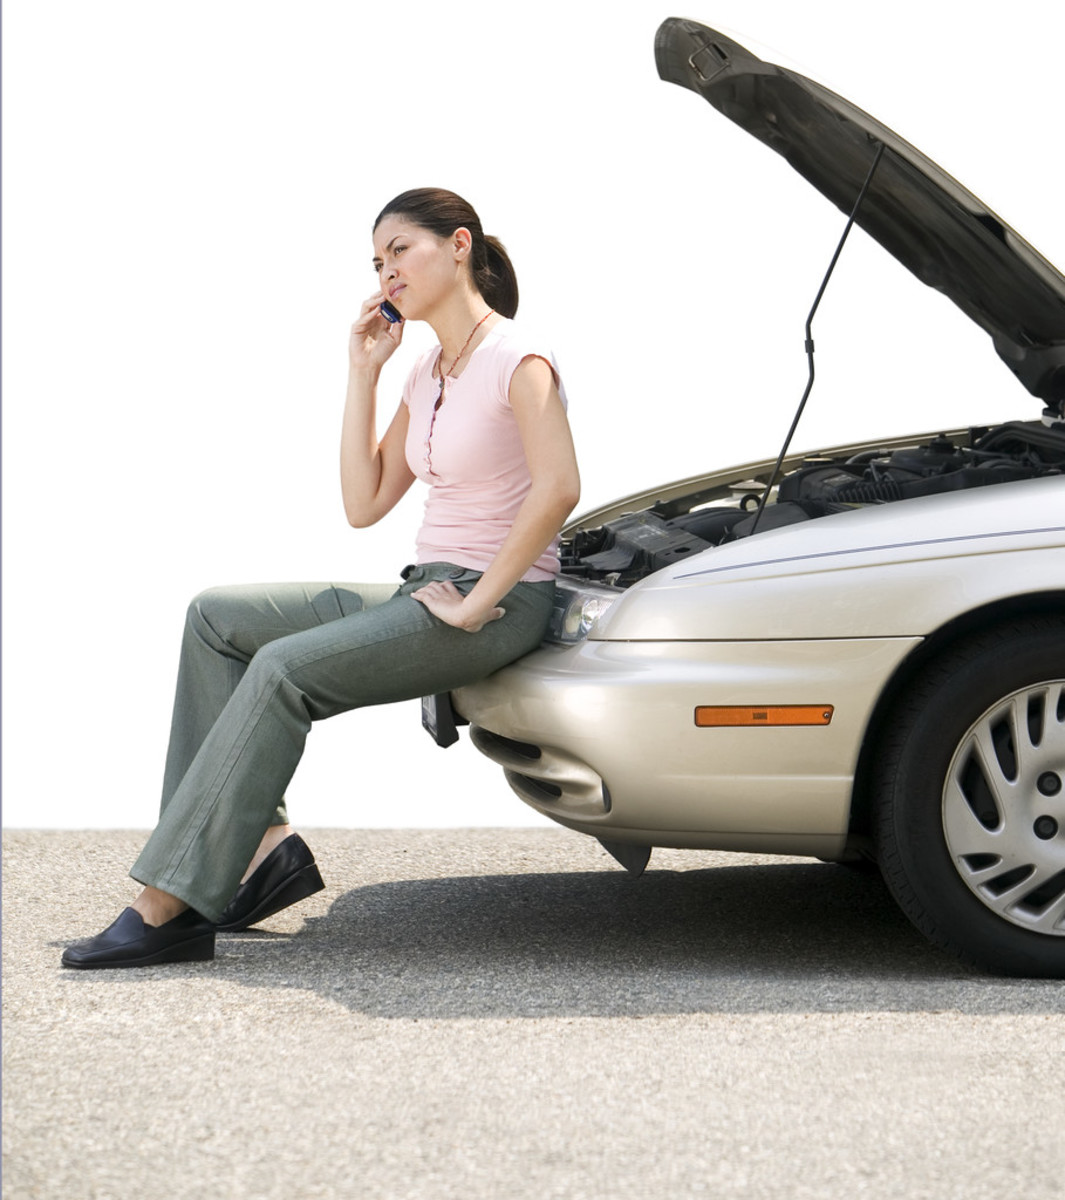 Are Women Charged More for Car Repairs? 6 Tips to Help Women at the Mechanic